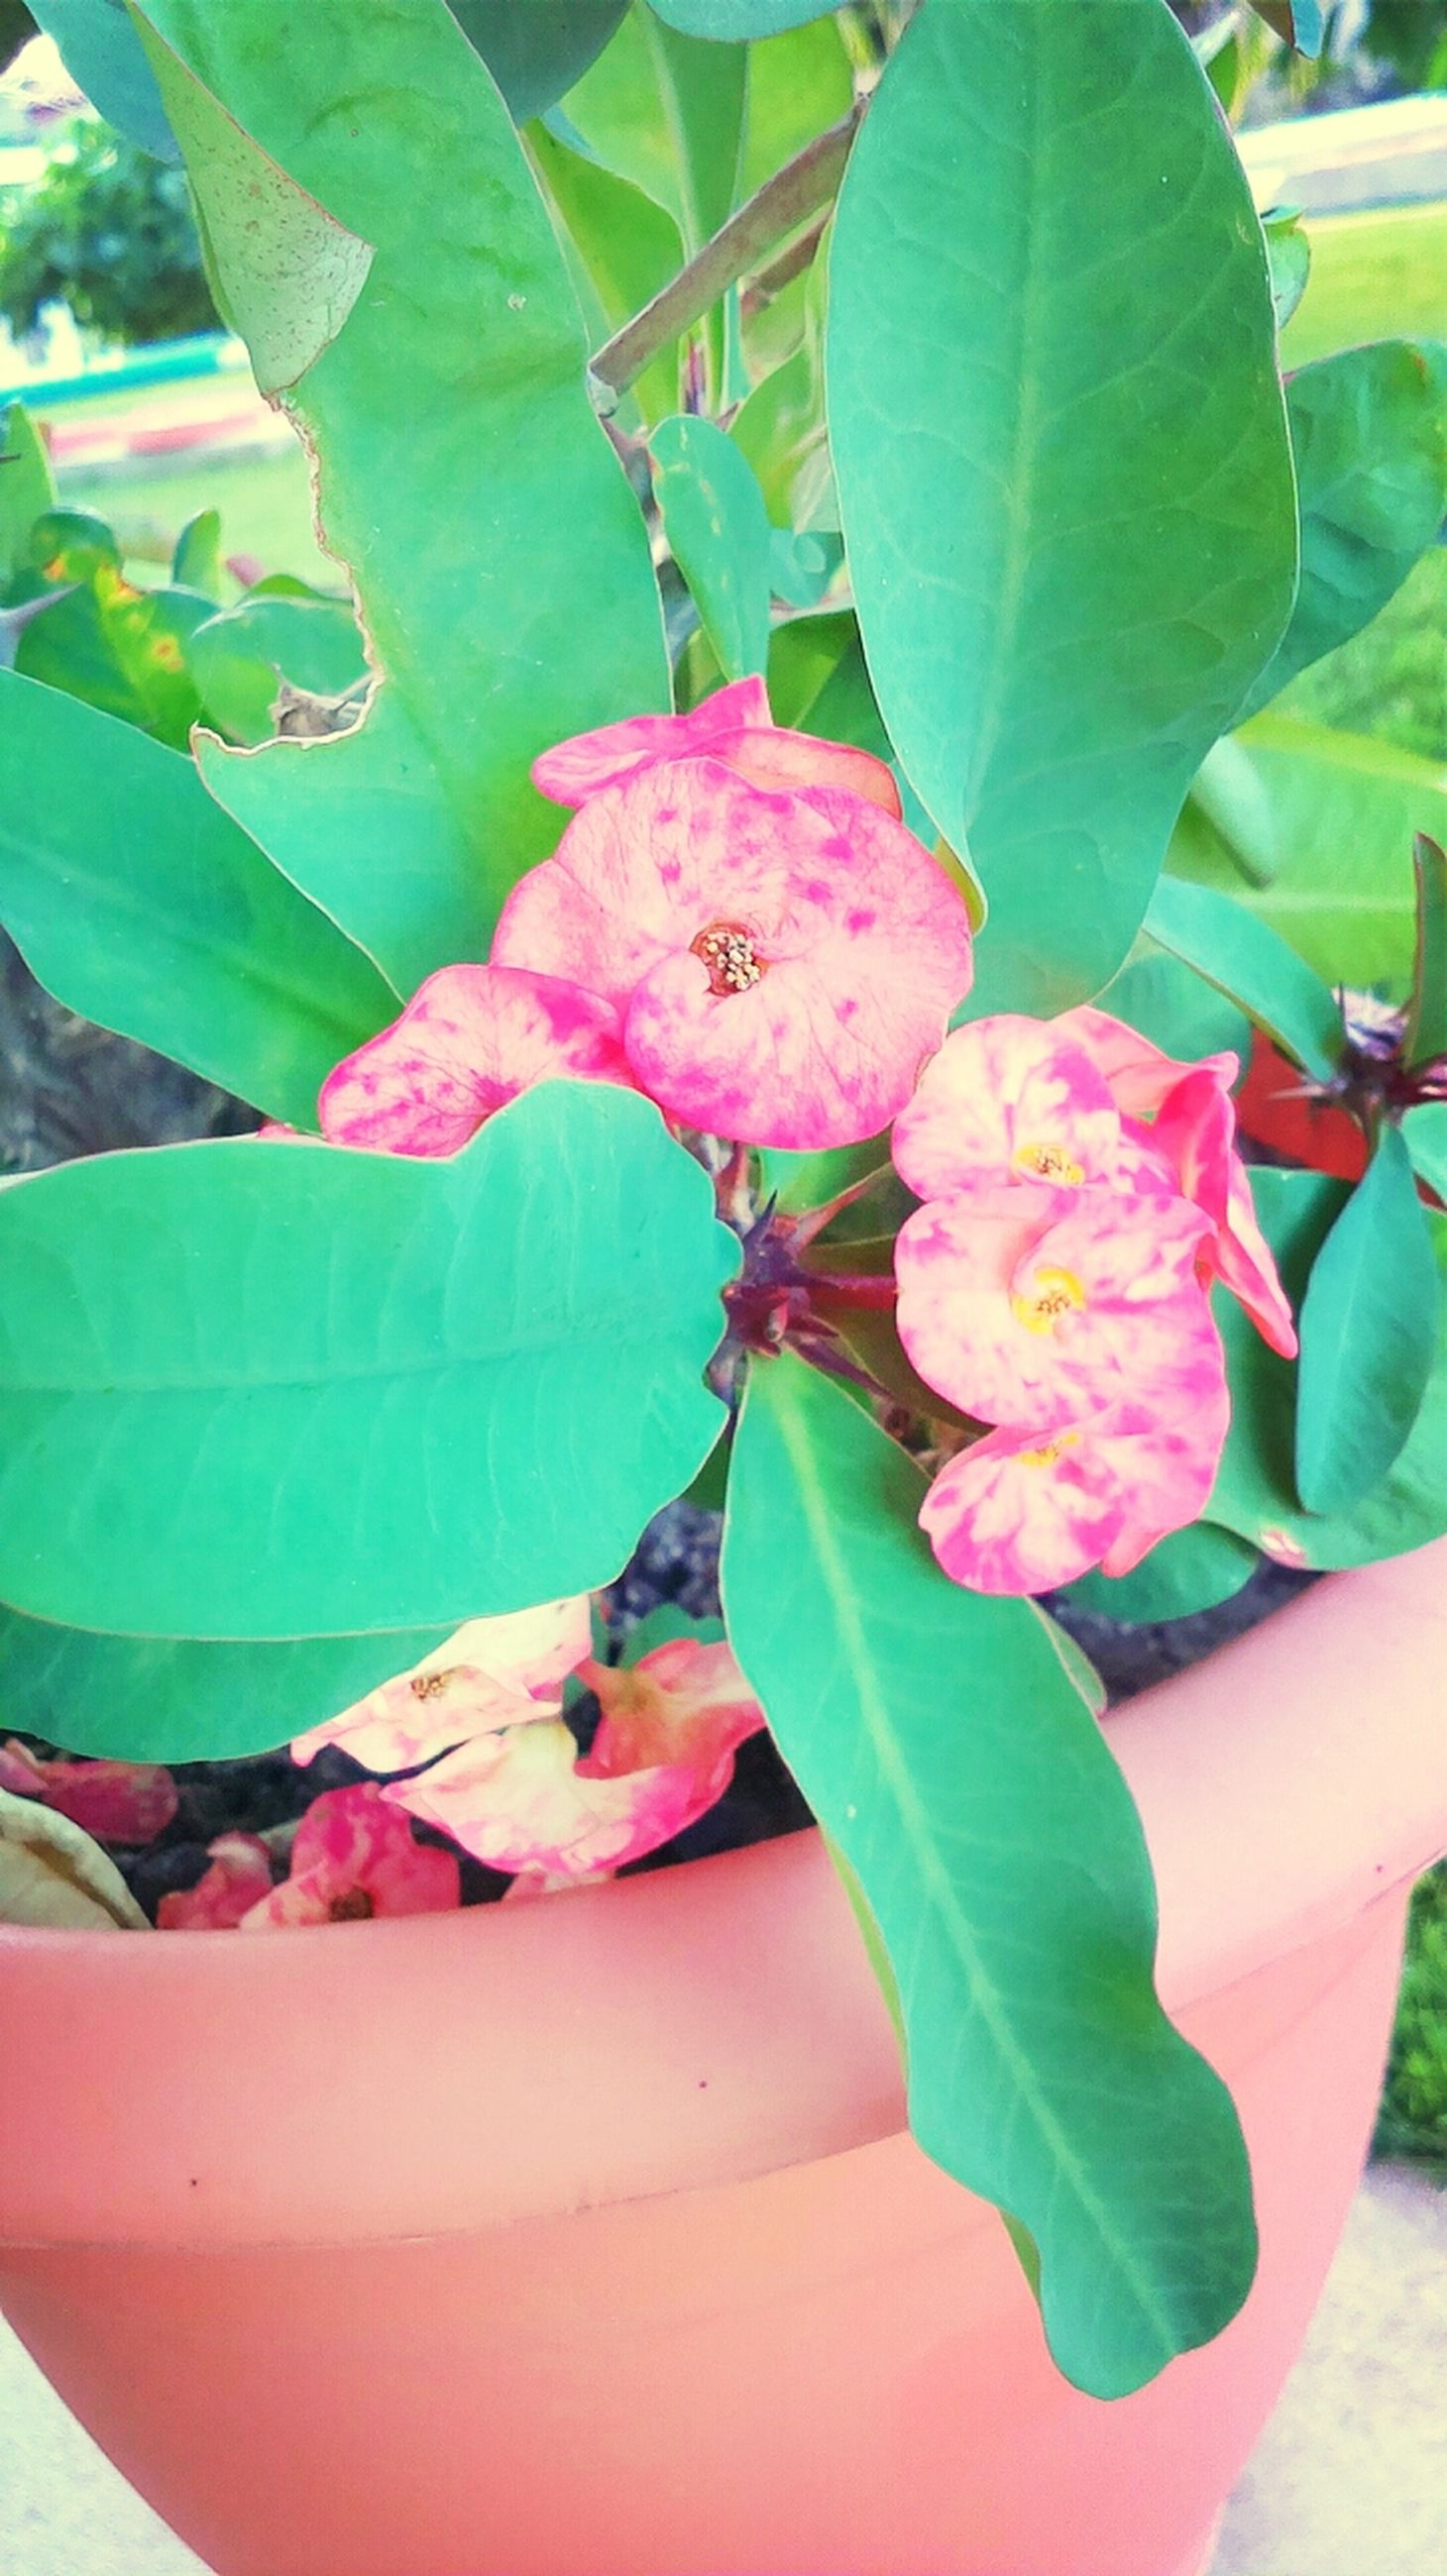 leaf, close-up, freshness, pink color, plant, growth, nature, focus on foreground, flower, no people, indoors, day, green color, food and drink, branch, one animal, food, beauty in nature, animal themes